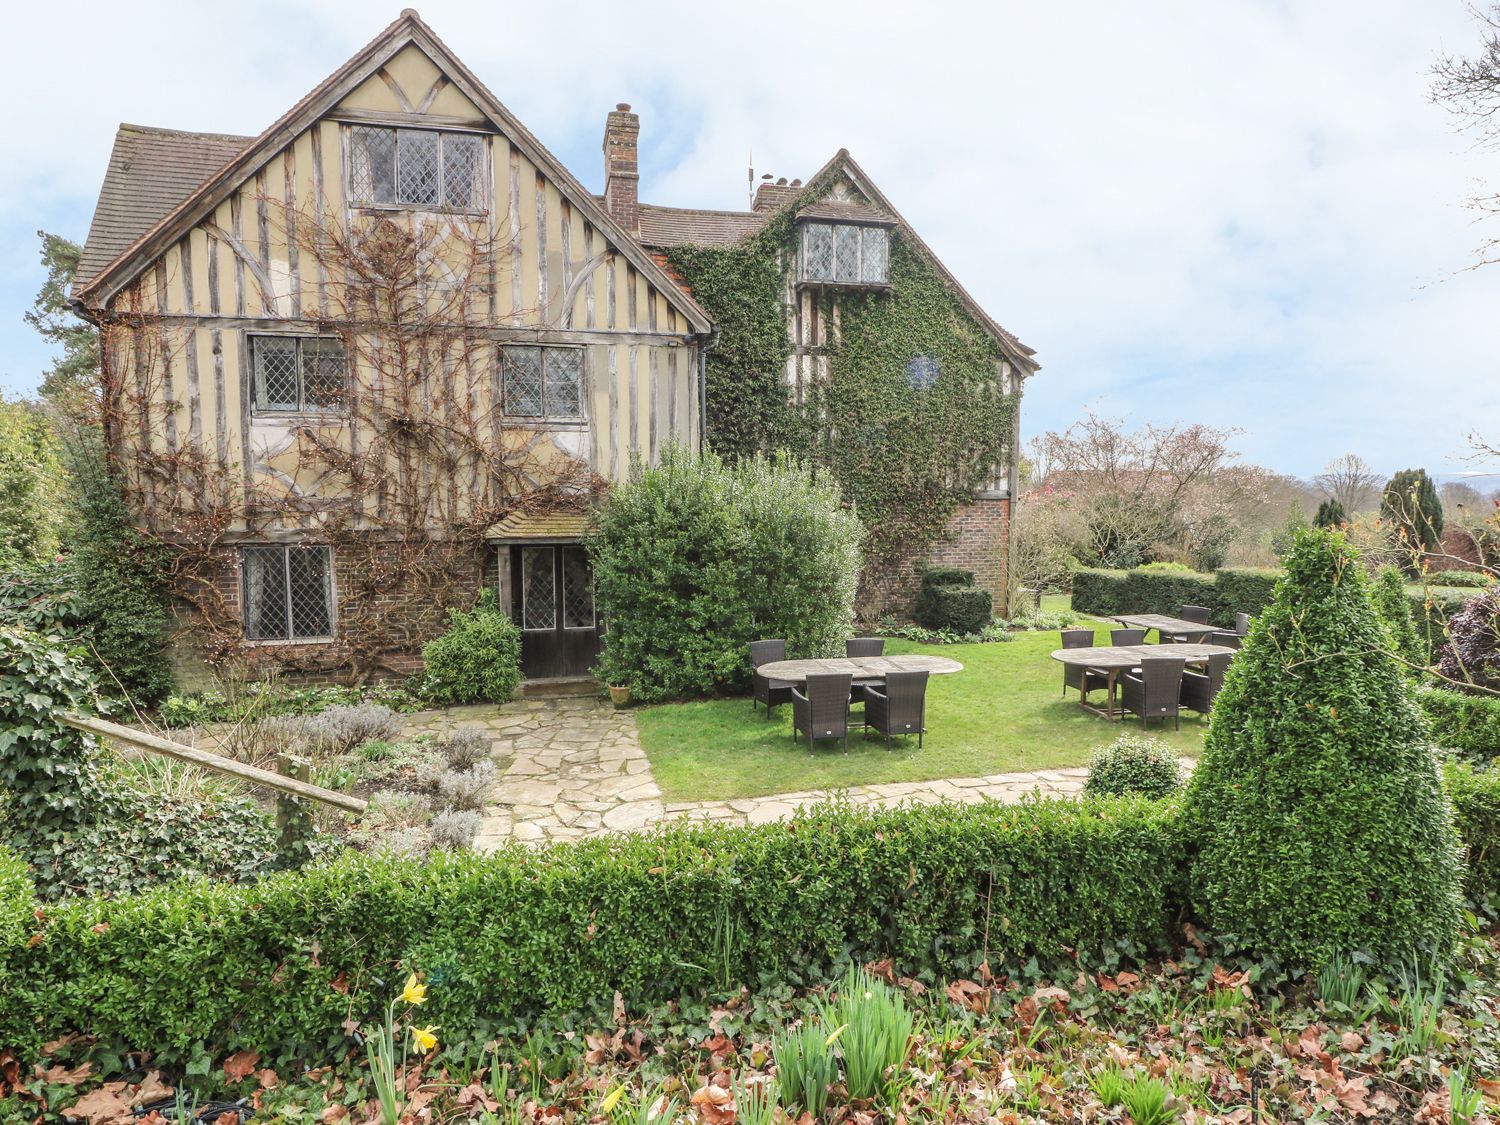 Holiday Cottages in Kent | Sykes Cottages